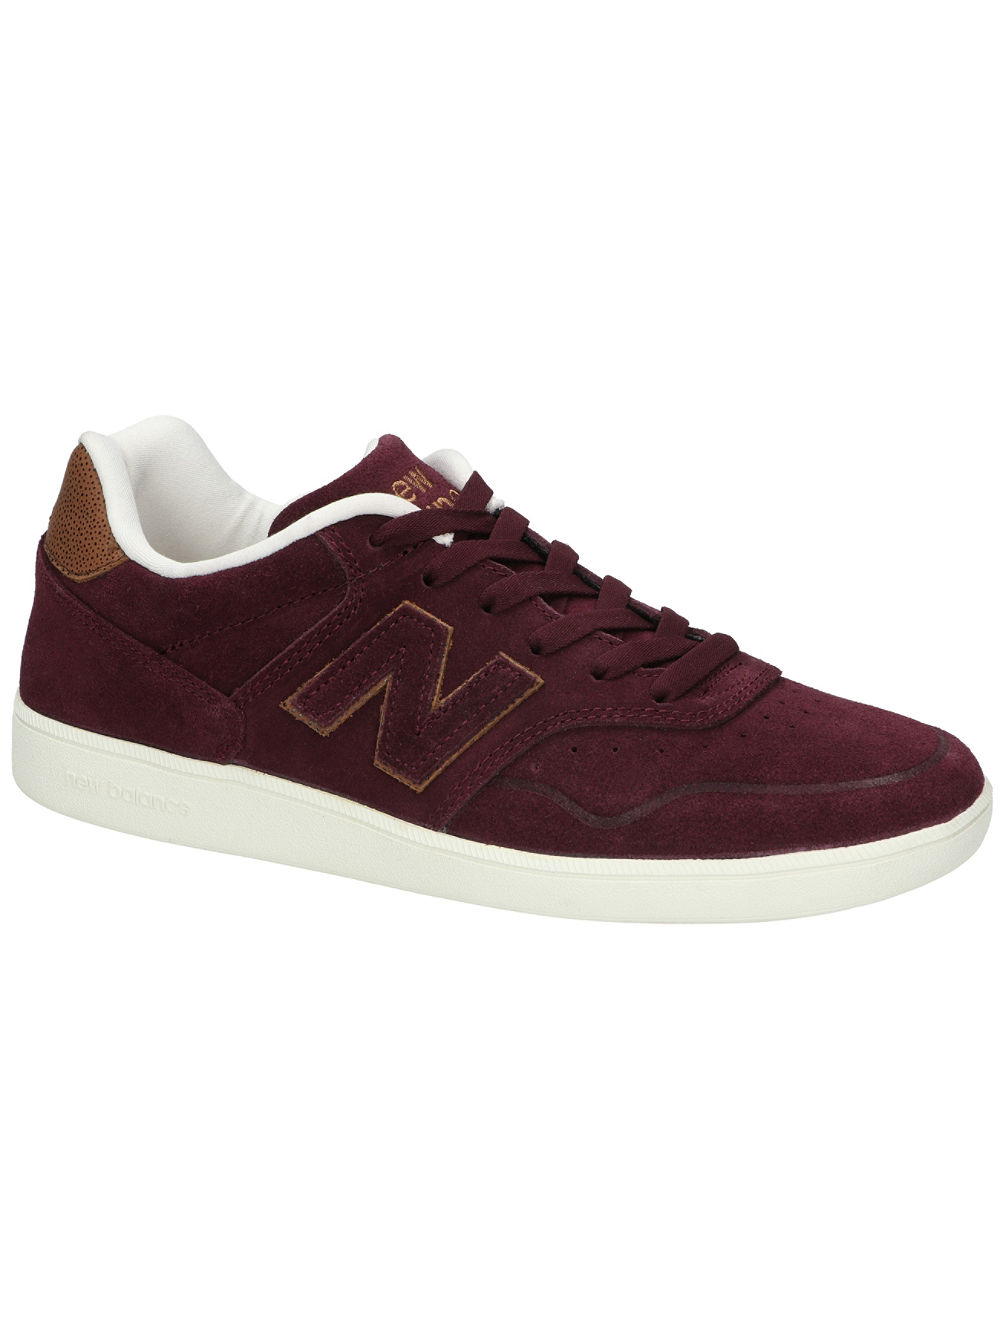 new balance skate shoes. 288 numeric skate shoes. new balance shoes